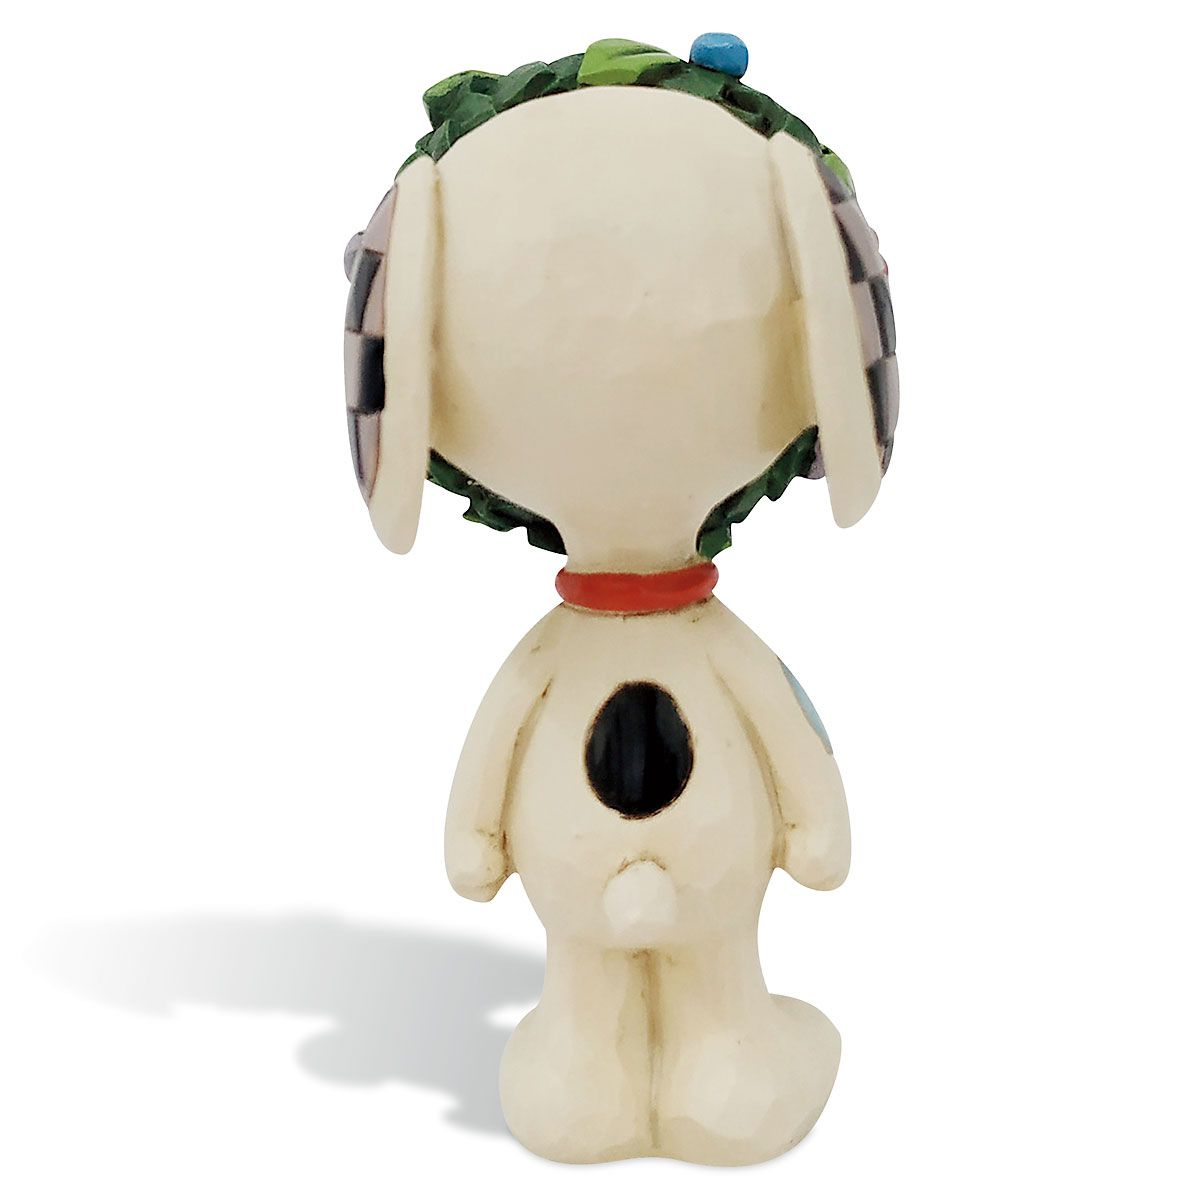 Mini Snoopy with Wreath by Jim Shore